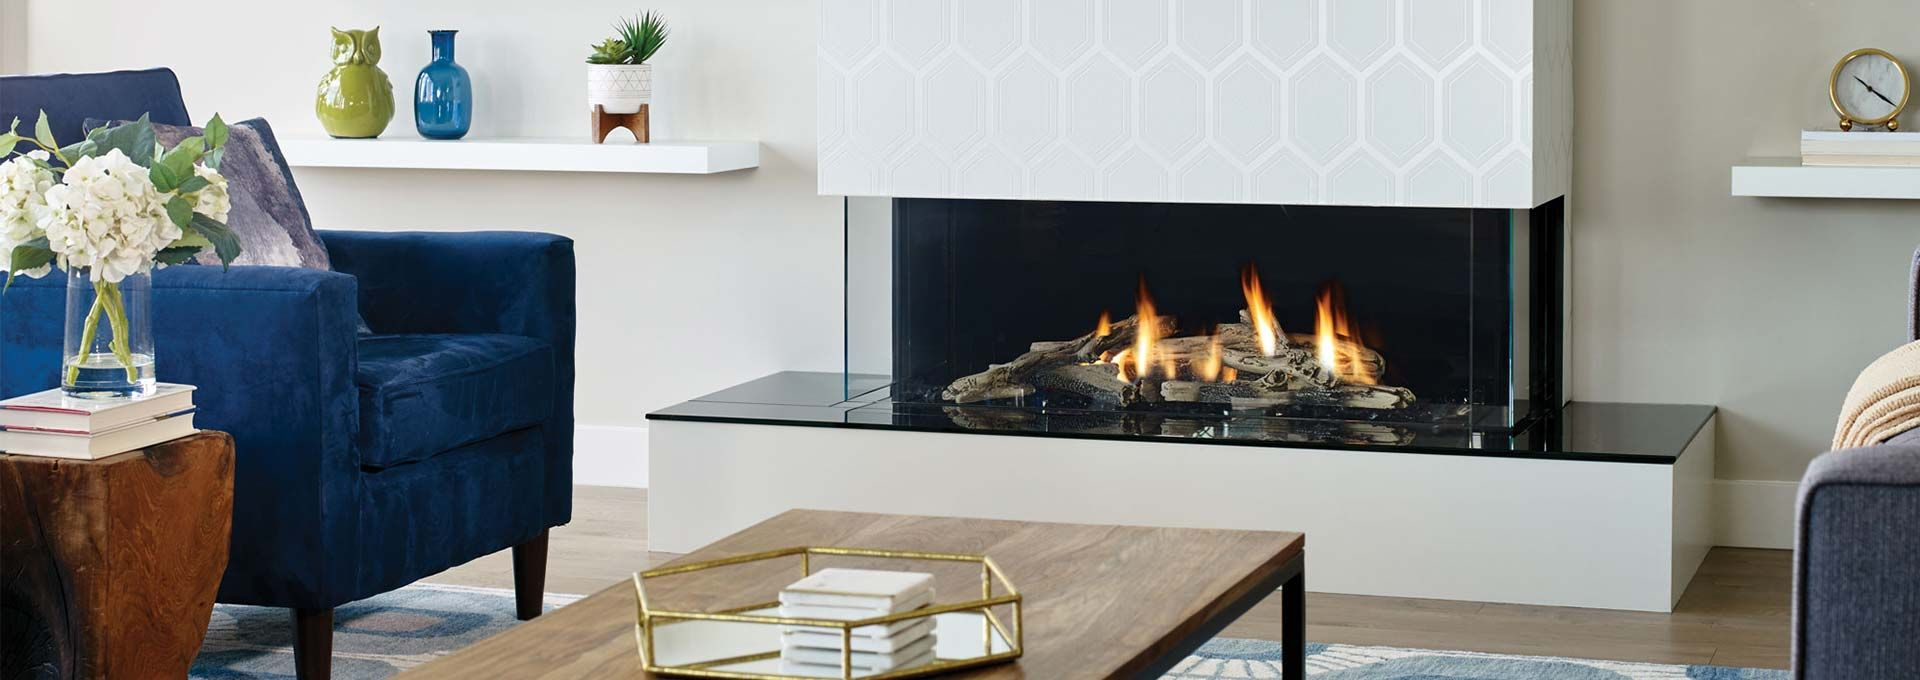 Pin On Contemporary Fireplace Designs